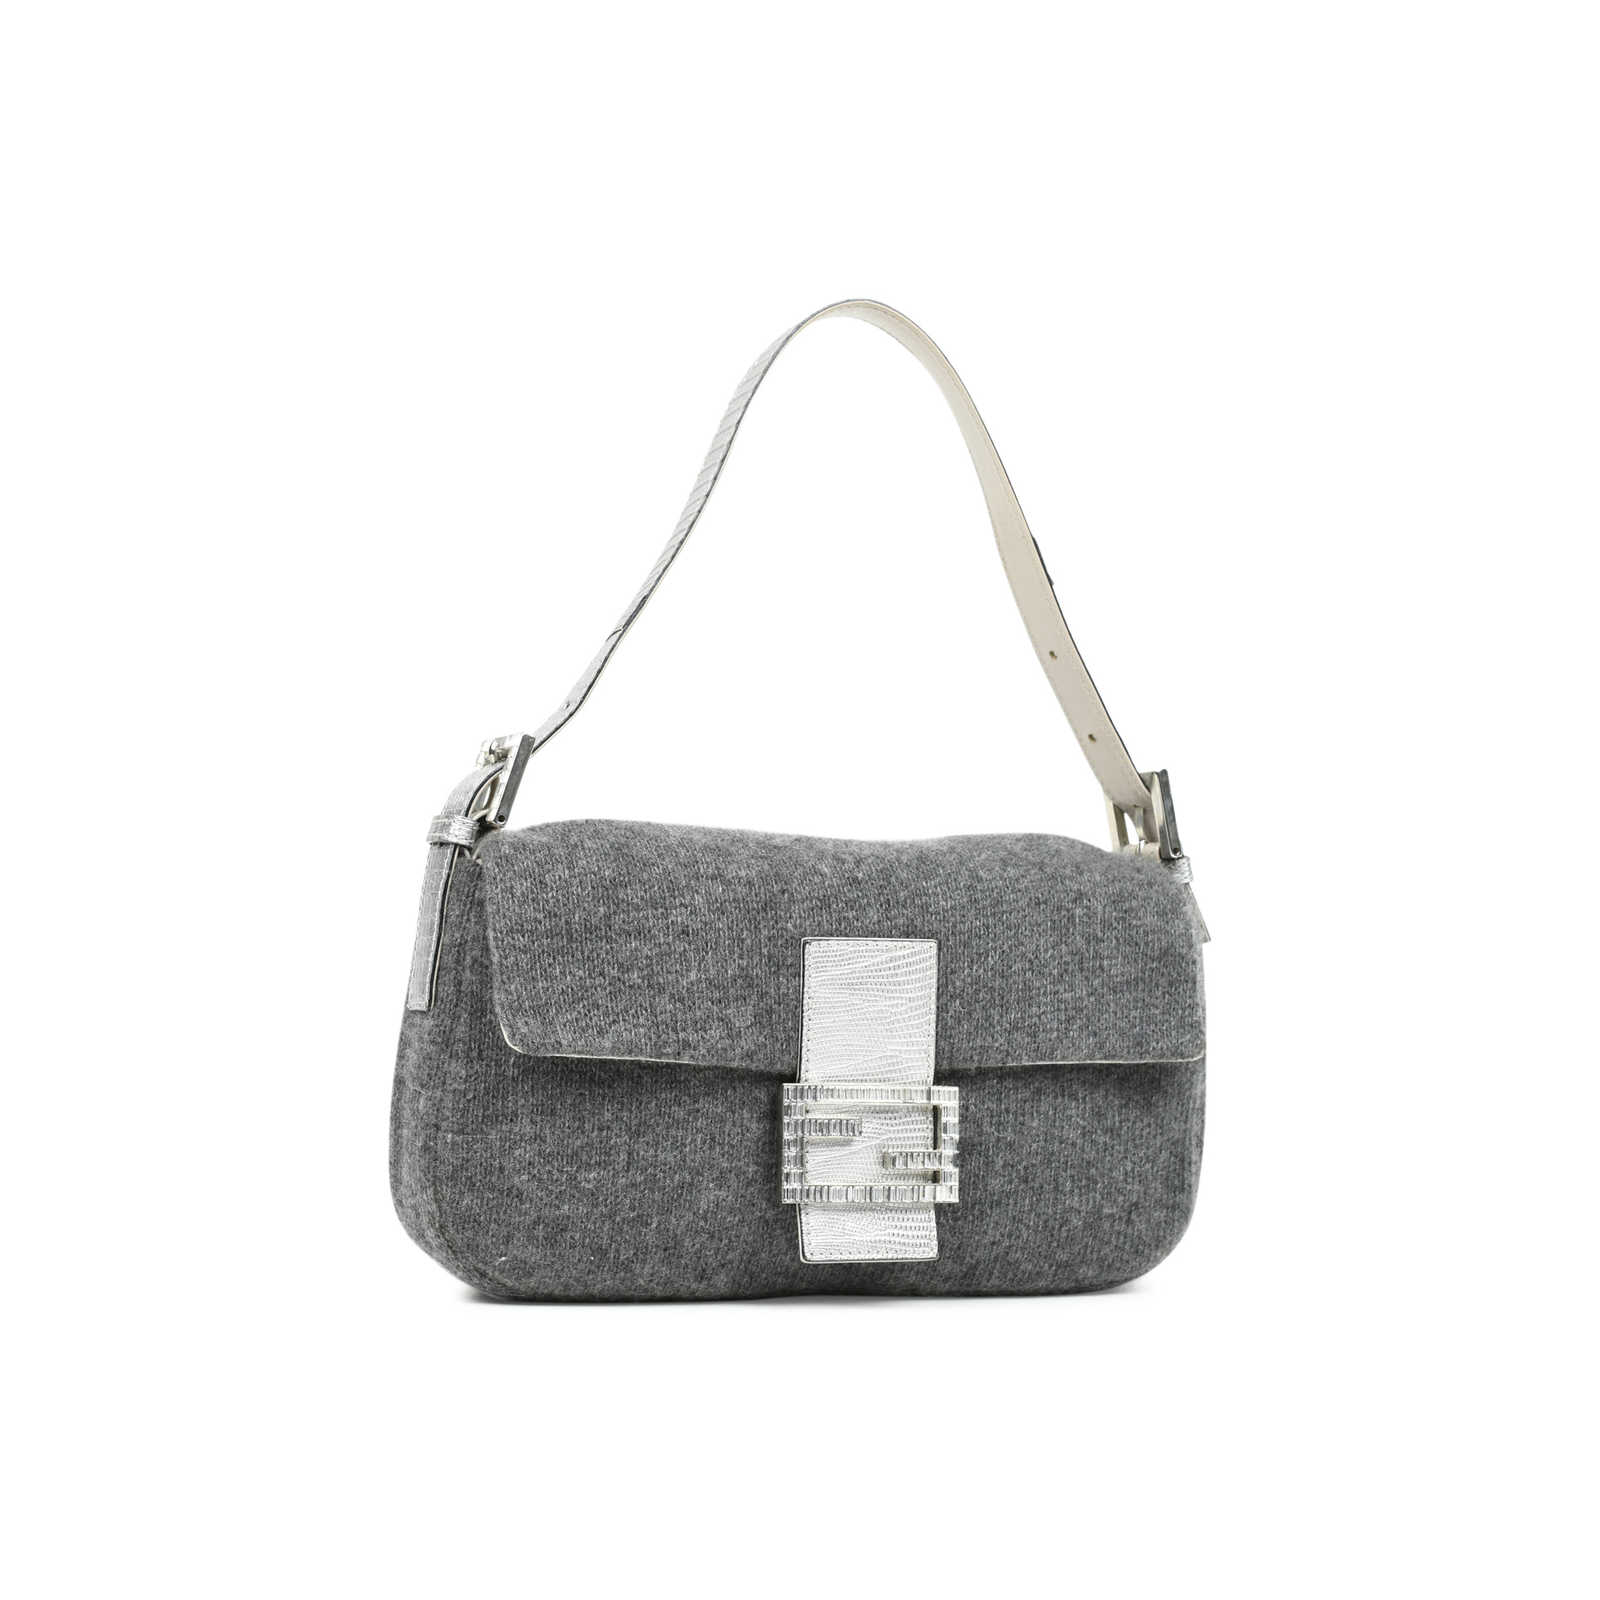 7af36b69fff2 ... Authentic Second Hand Fendi Wool Baguette Bag (PSS-483-00007) -  Thumbnail ...